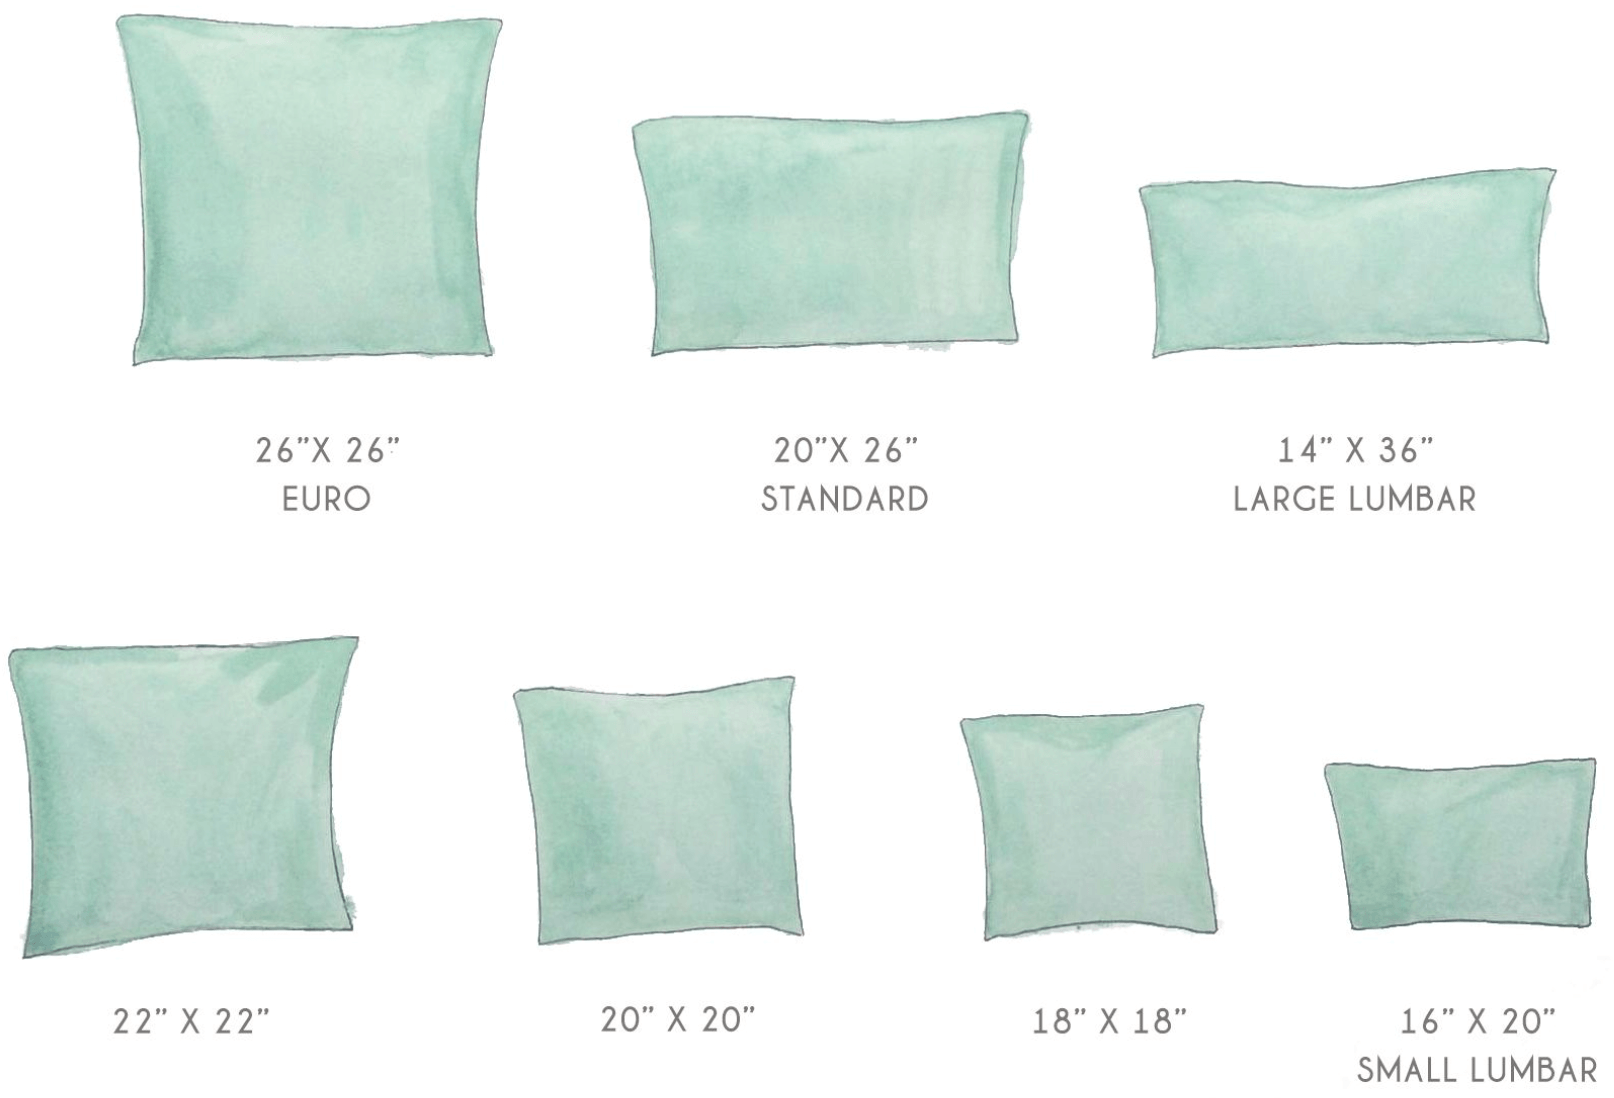 Size of the Standard Pillowcase